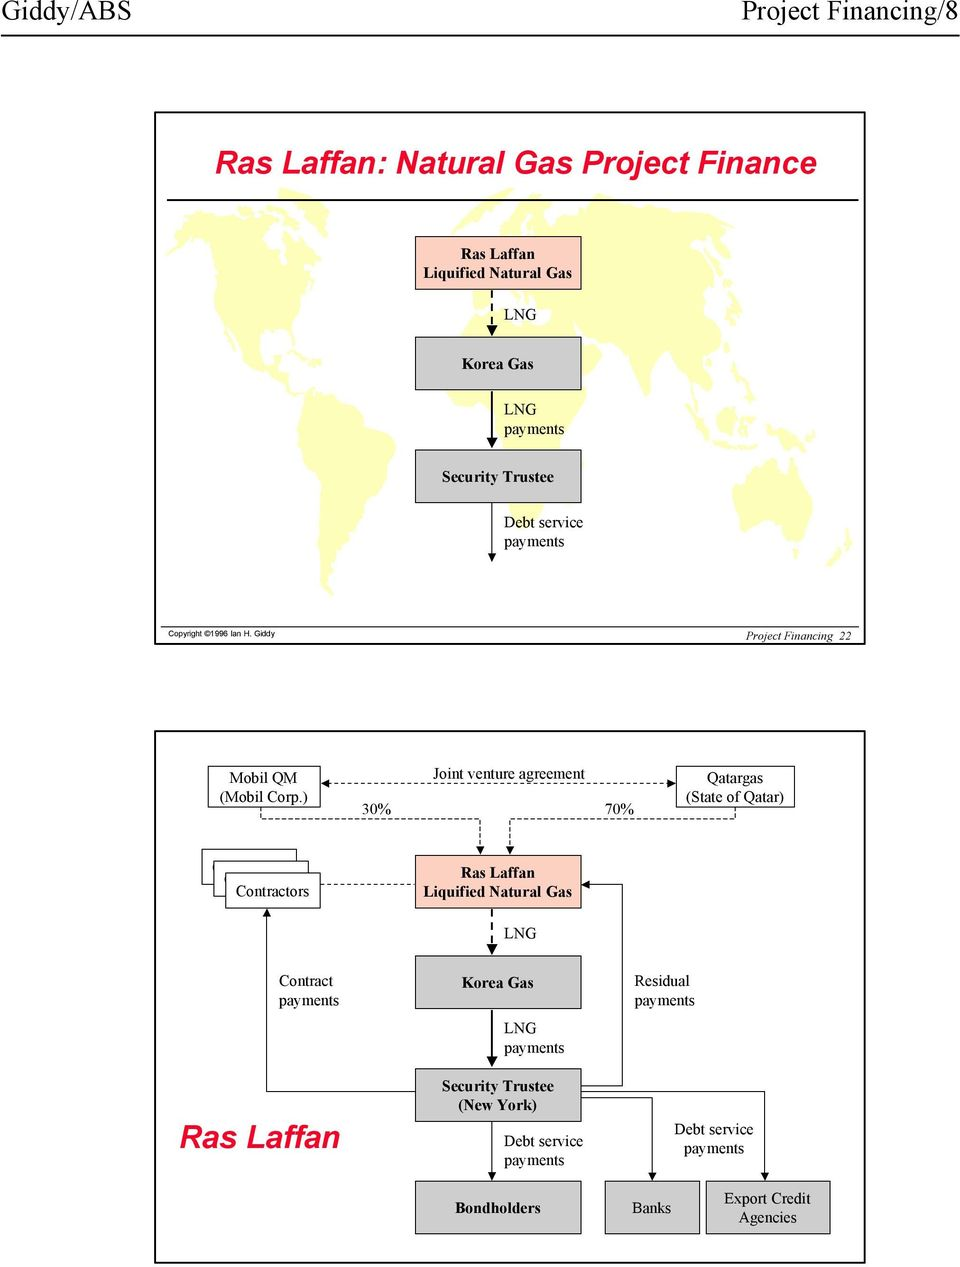 ) Joint venture agreement 30% 70% Qatargas (State of Qatar) Contractors Contractors Contractors Ras Laffan Liquified